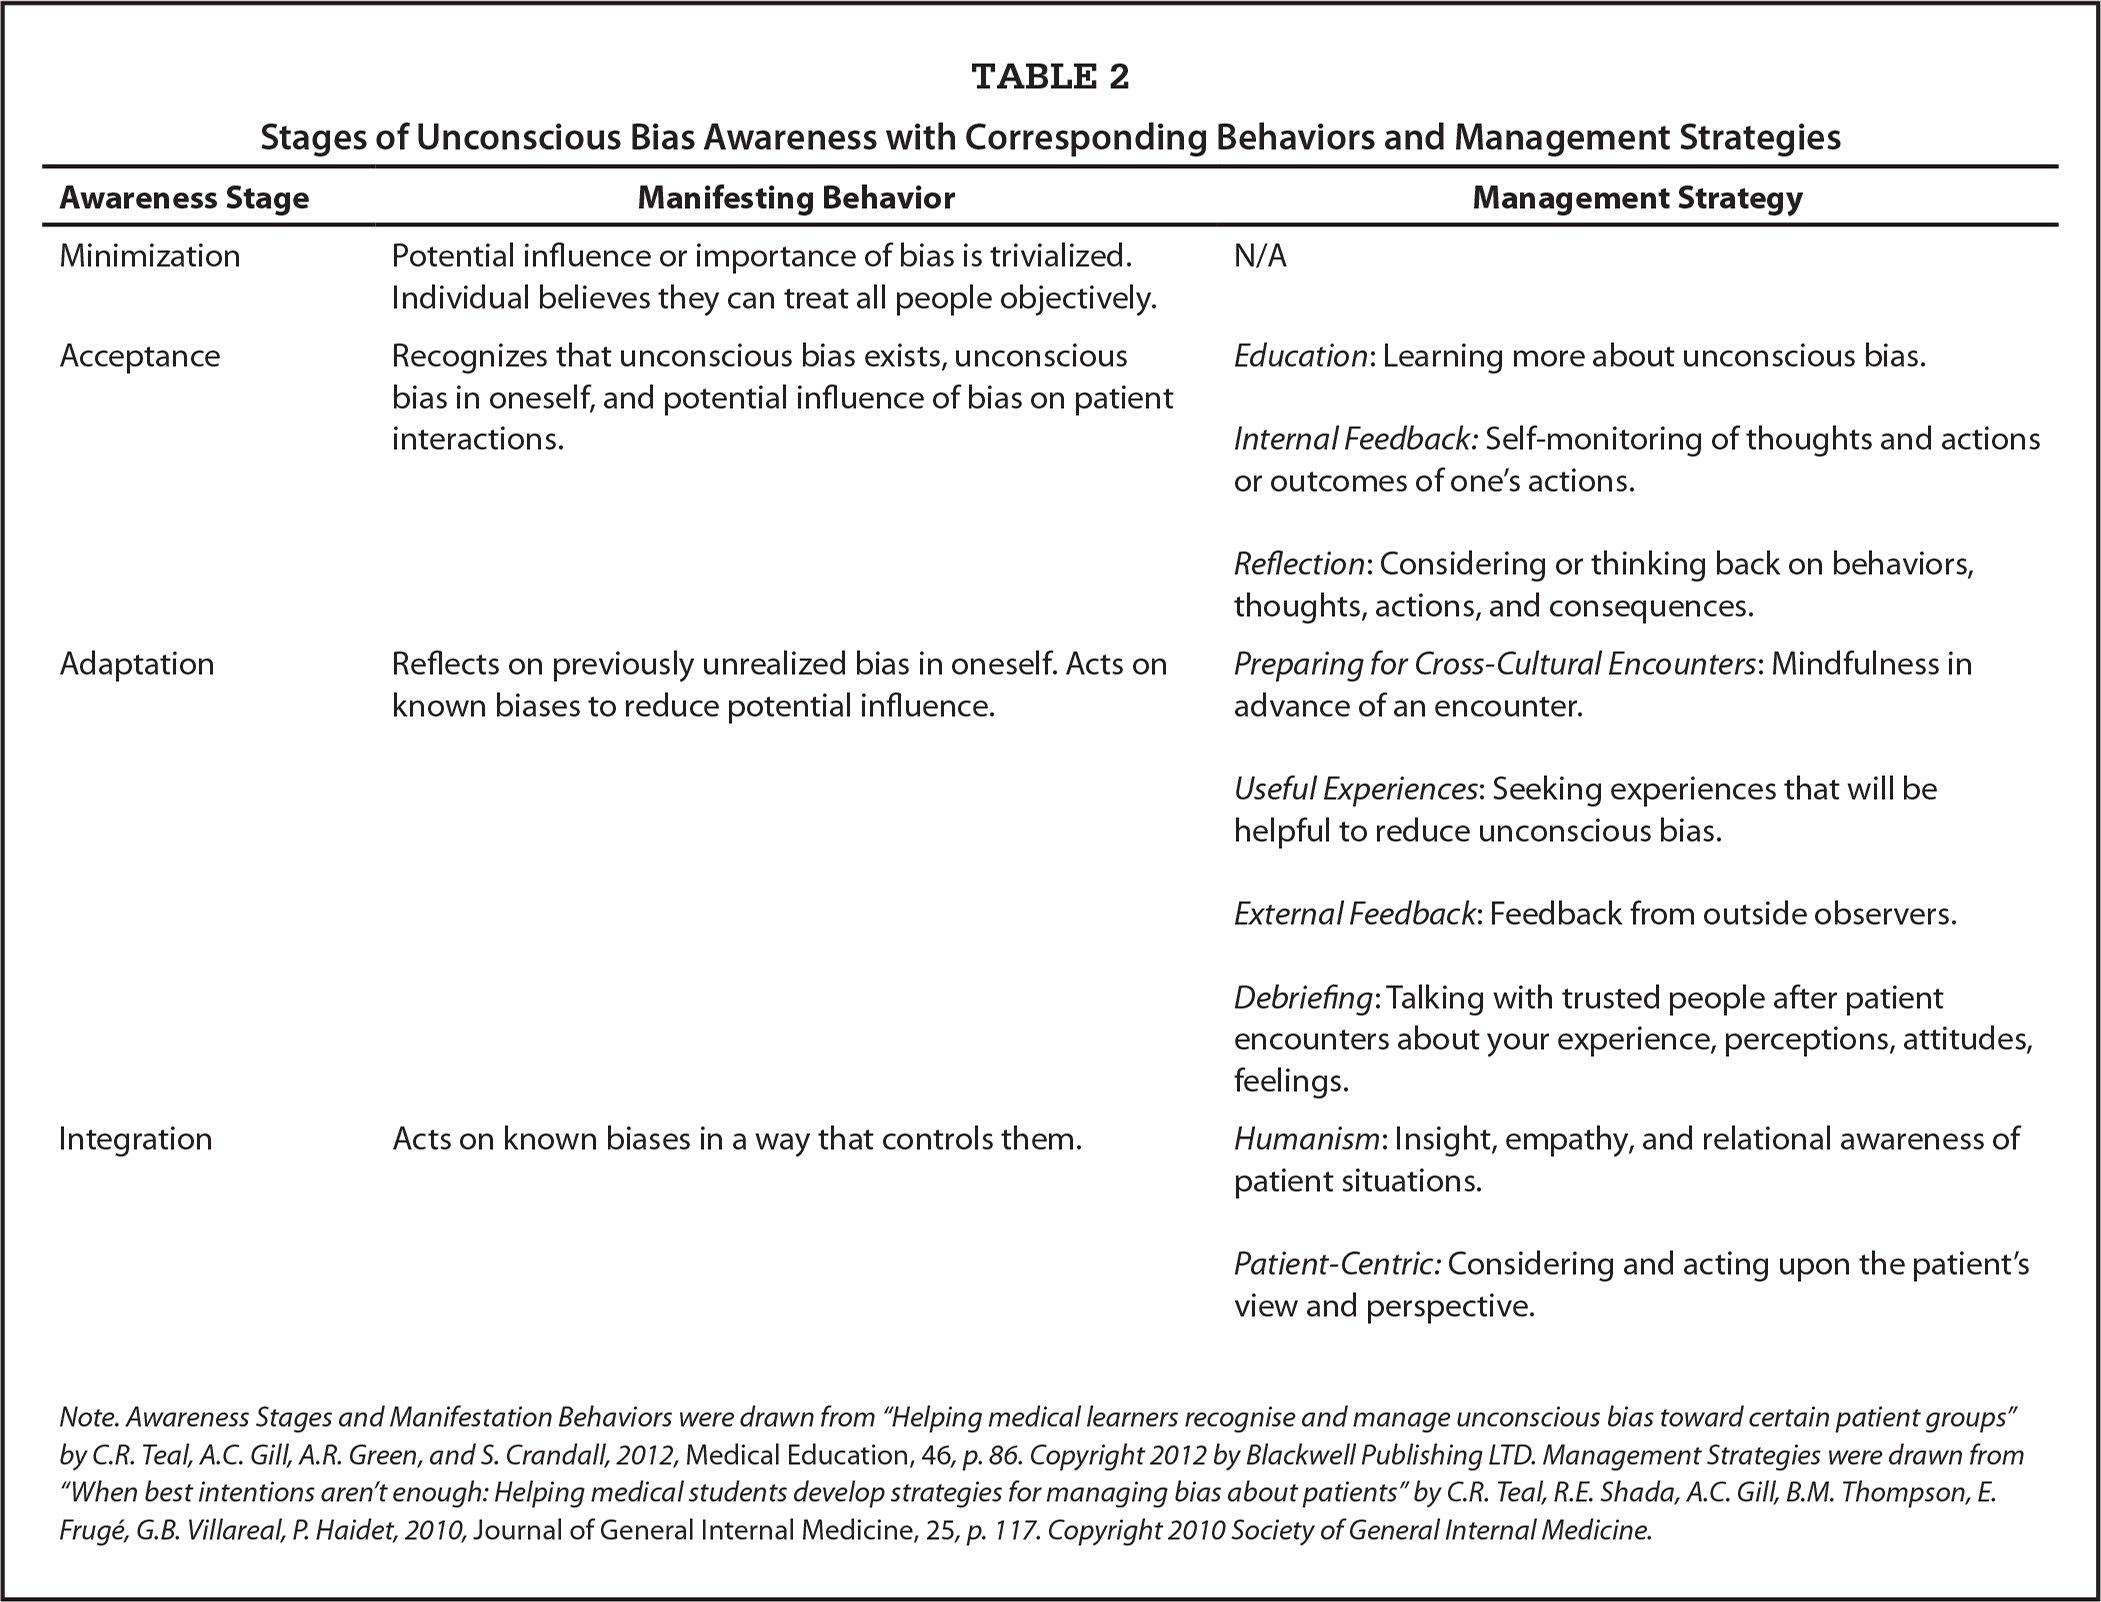 Stages of Unconscious Bias Awareness with Corresponding Behaviors and Management Strategies